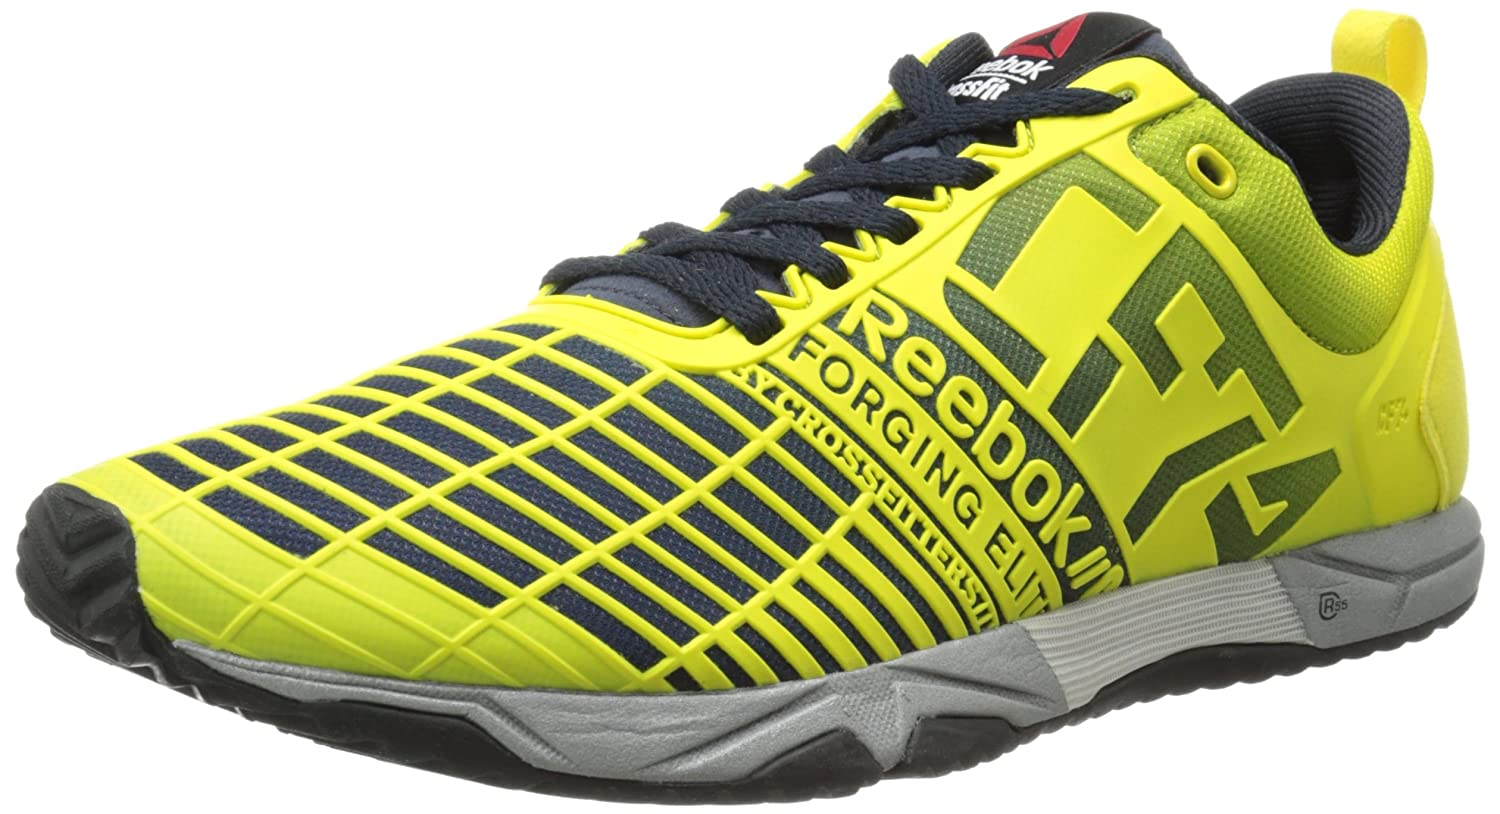 Women's Crossfit Training Shoe